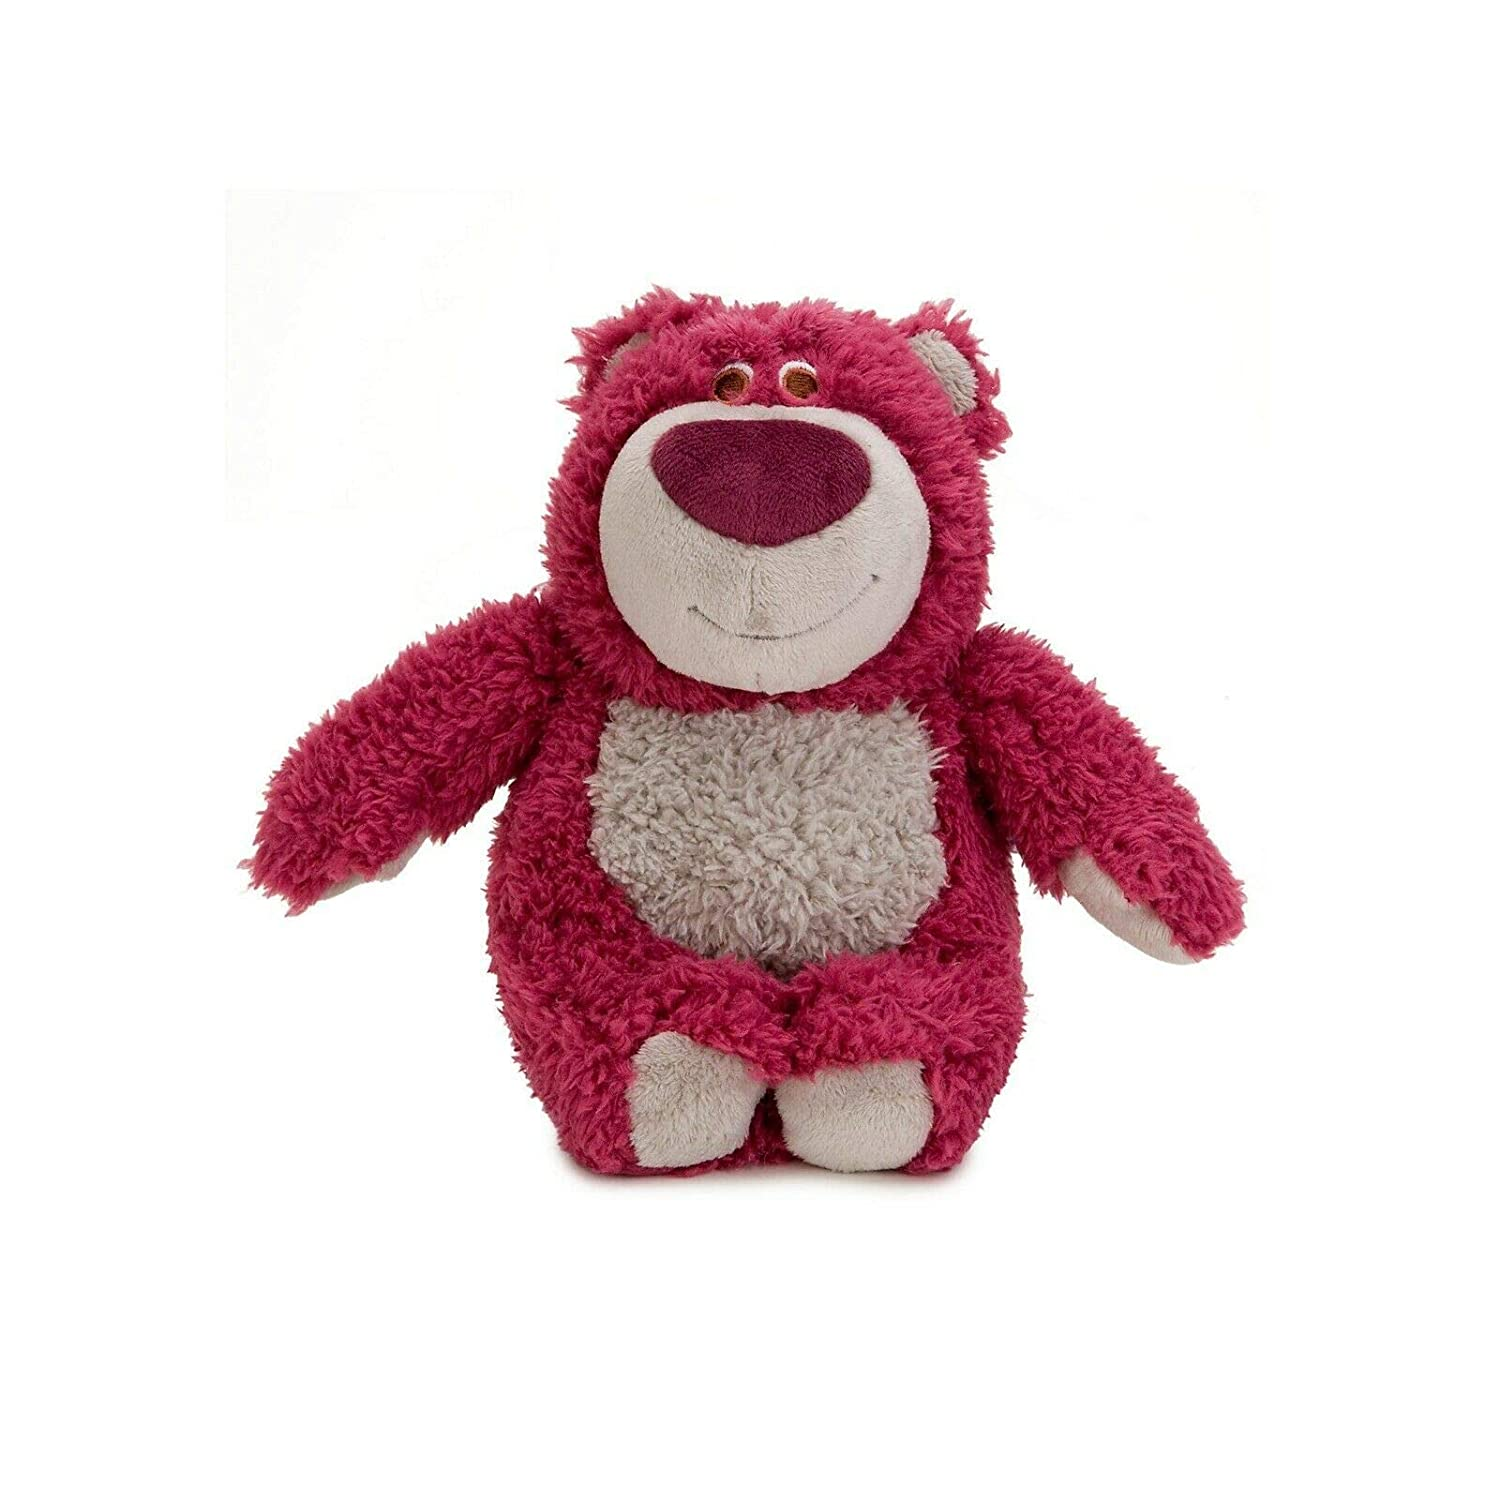 Official Disney Toy Story 18cm Lotso Strawberry Scented Soft Plush Toy